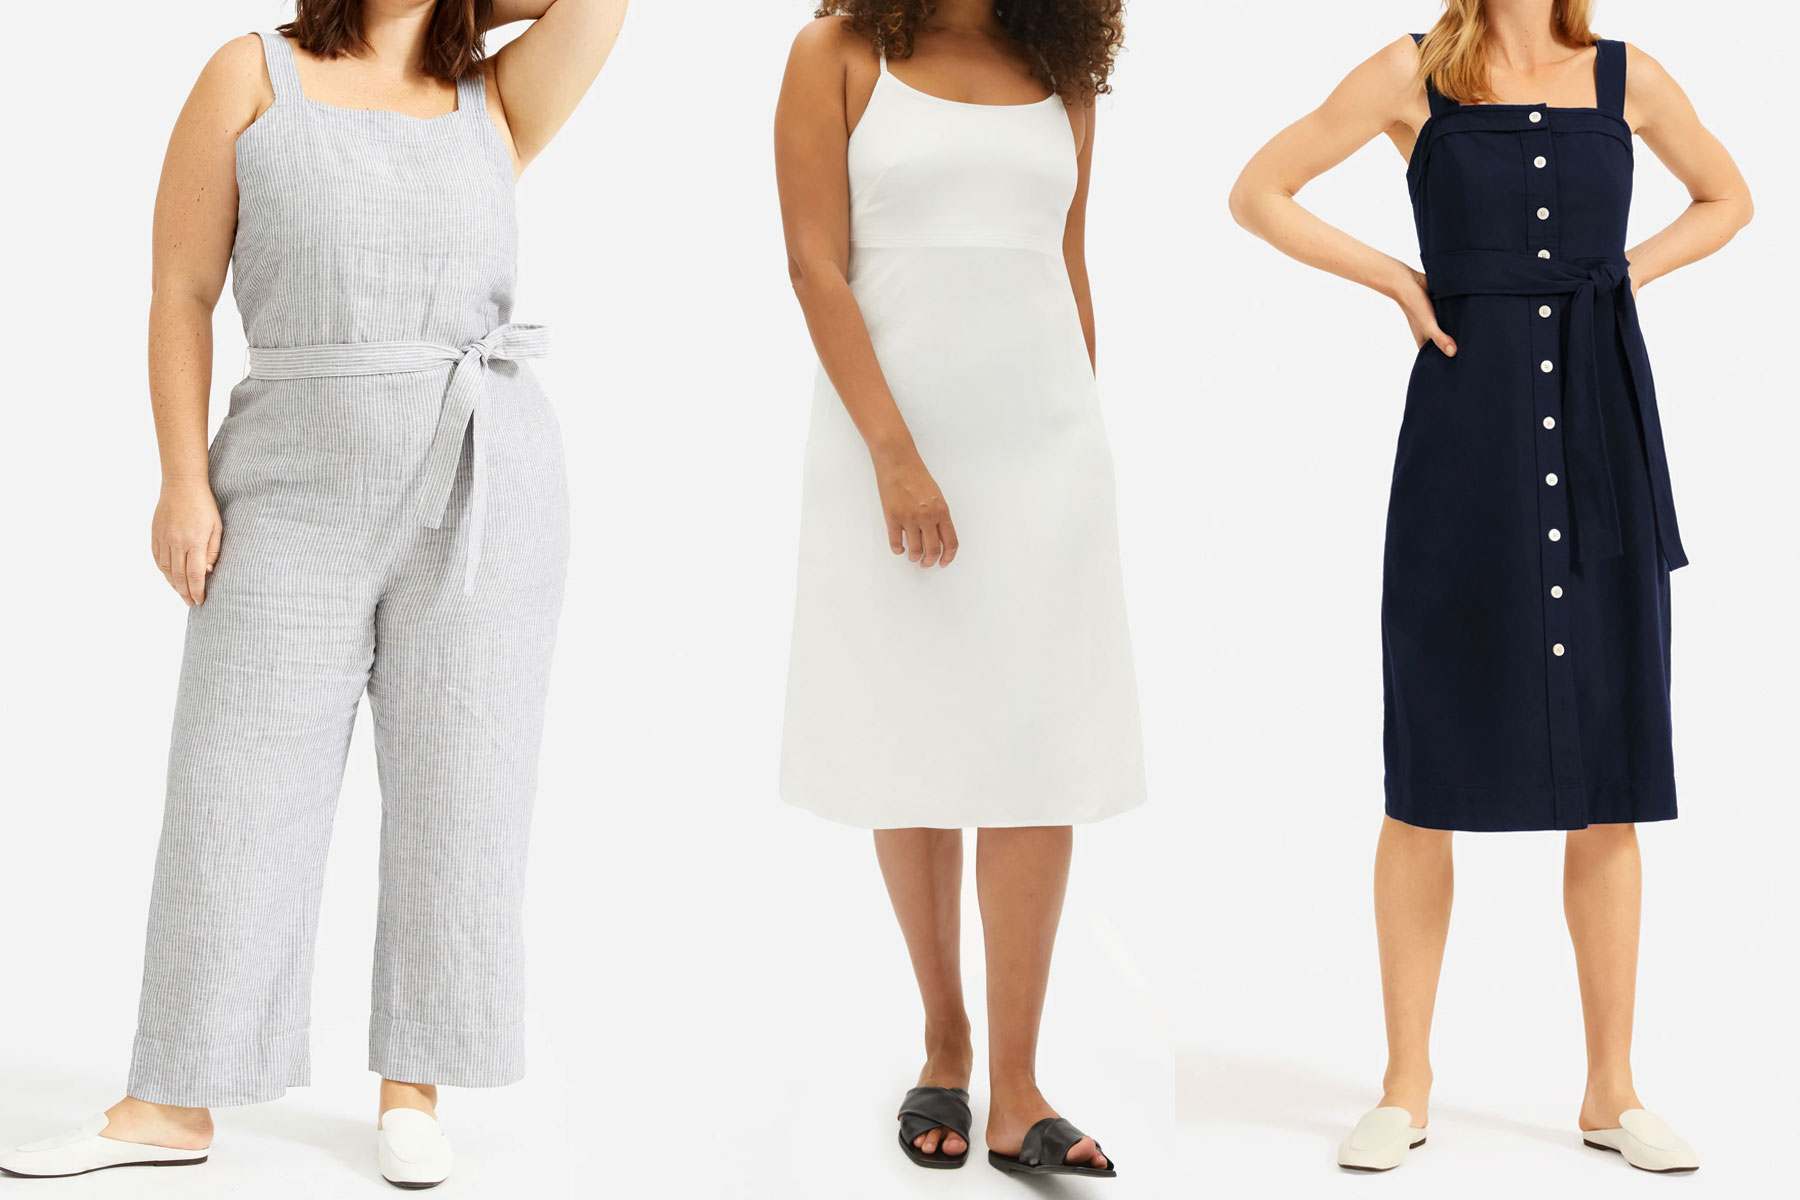 Various Everlane dresses and jumpsuits